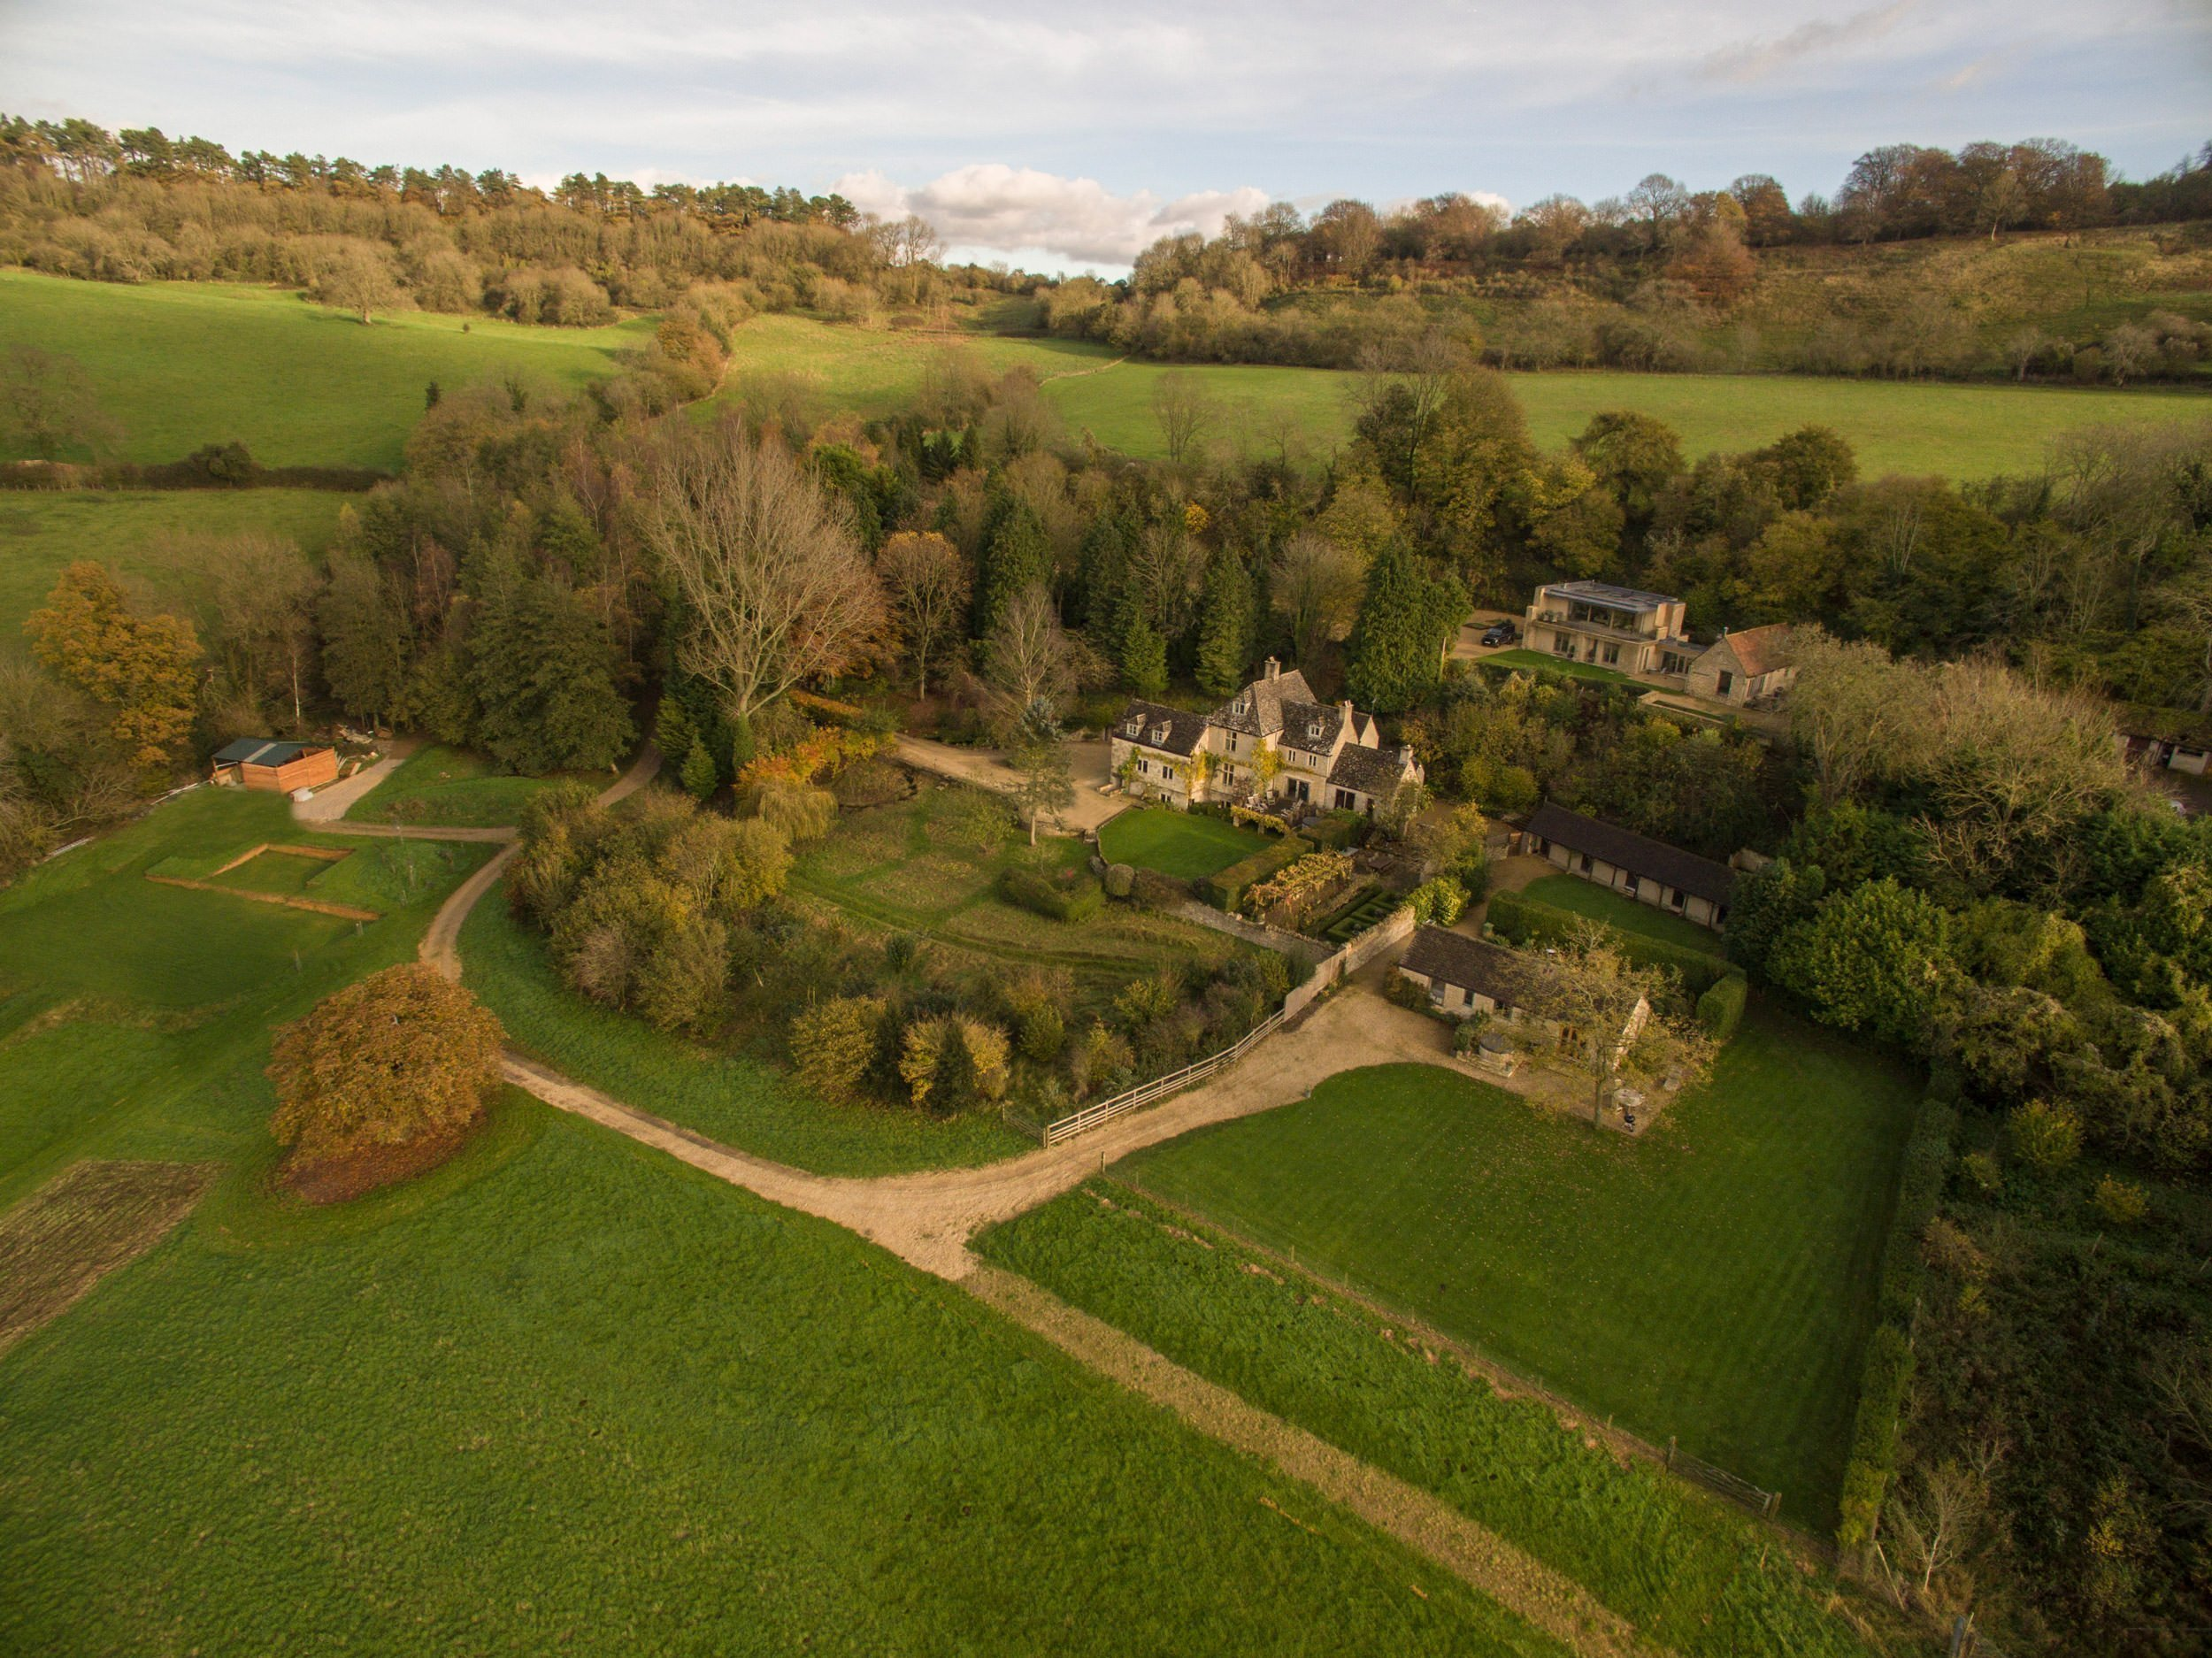 dryhill-luxury-cotswold-estate